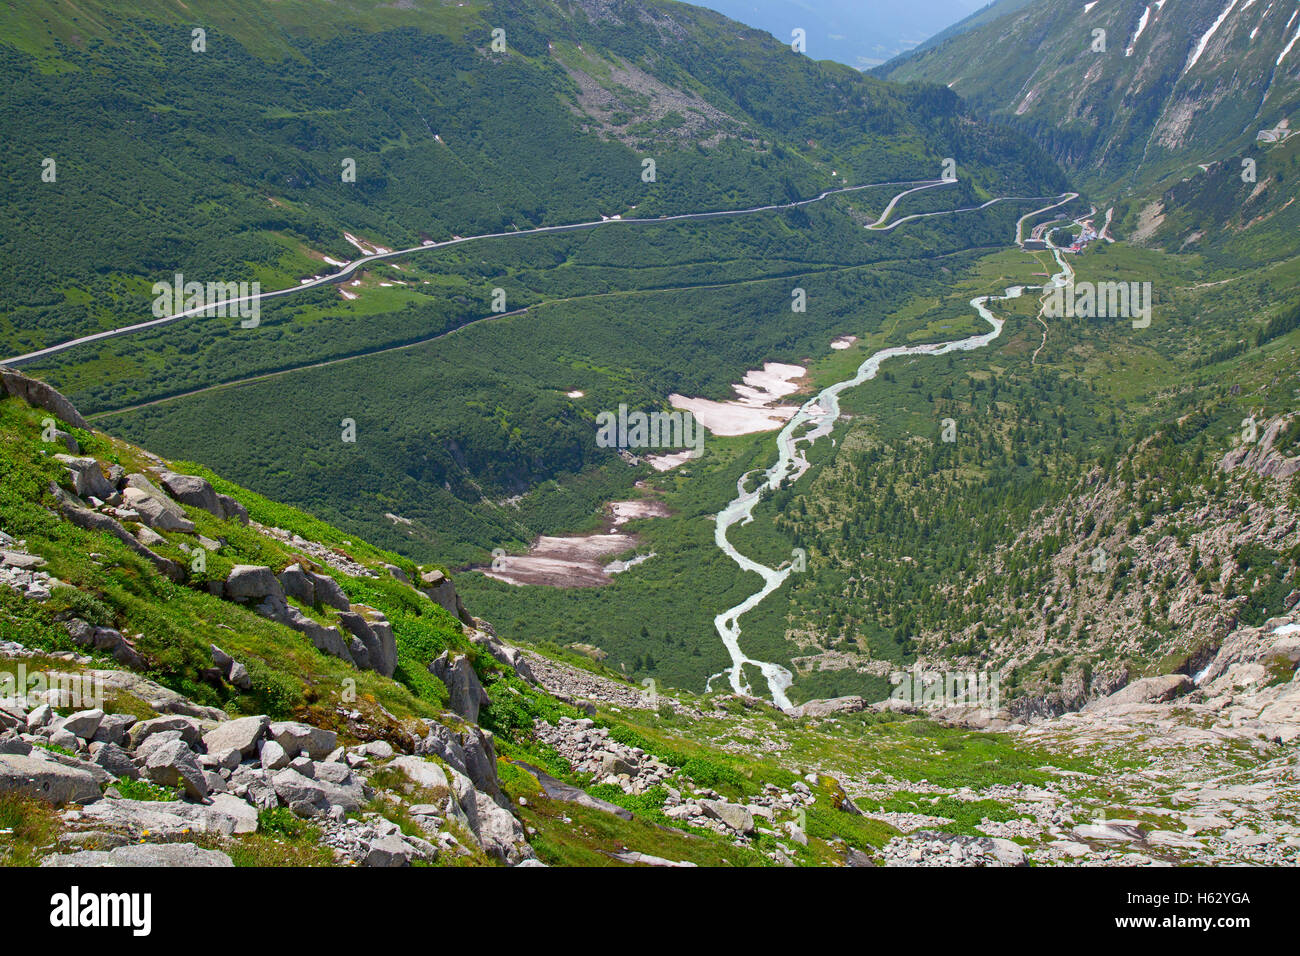 Rhone glacier, source of Rhone river Stock Photo